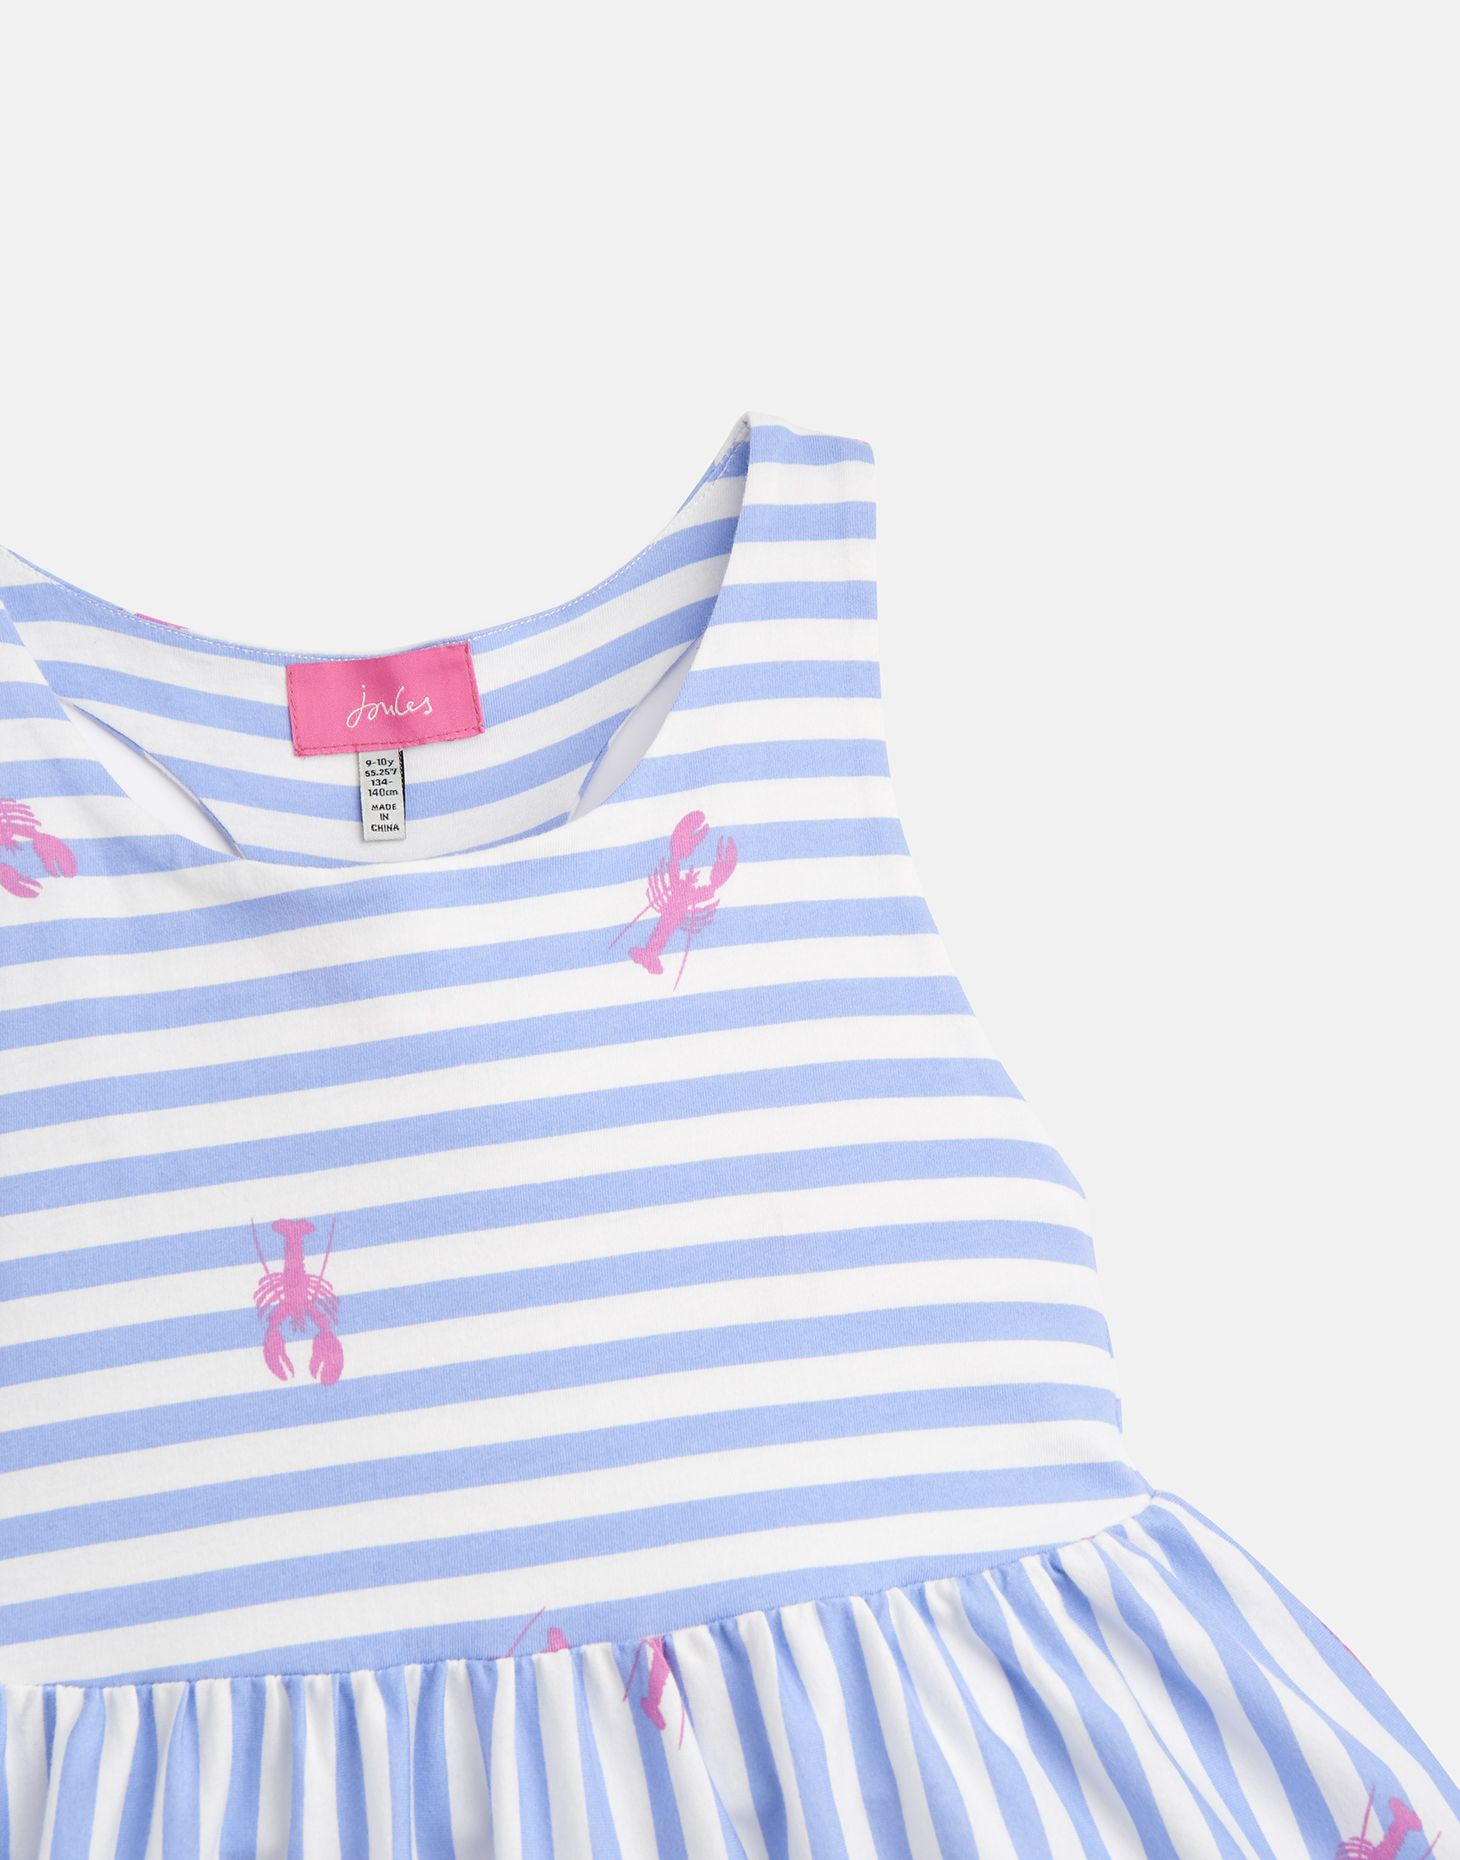 f2b76edf952b Joules Girls Juno Peplum Midi Dress Yr in BLUE LOBSTER STRIPE | eBay